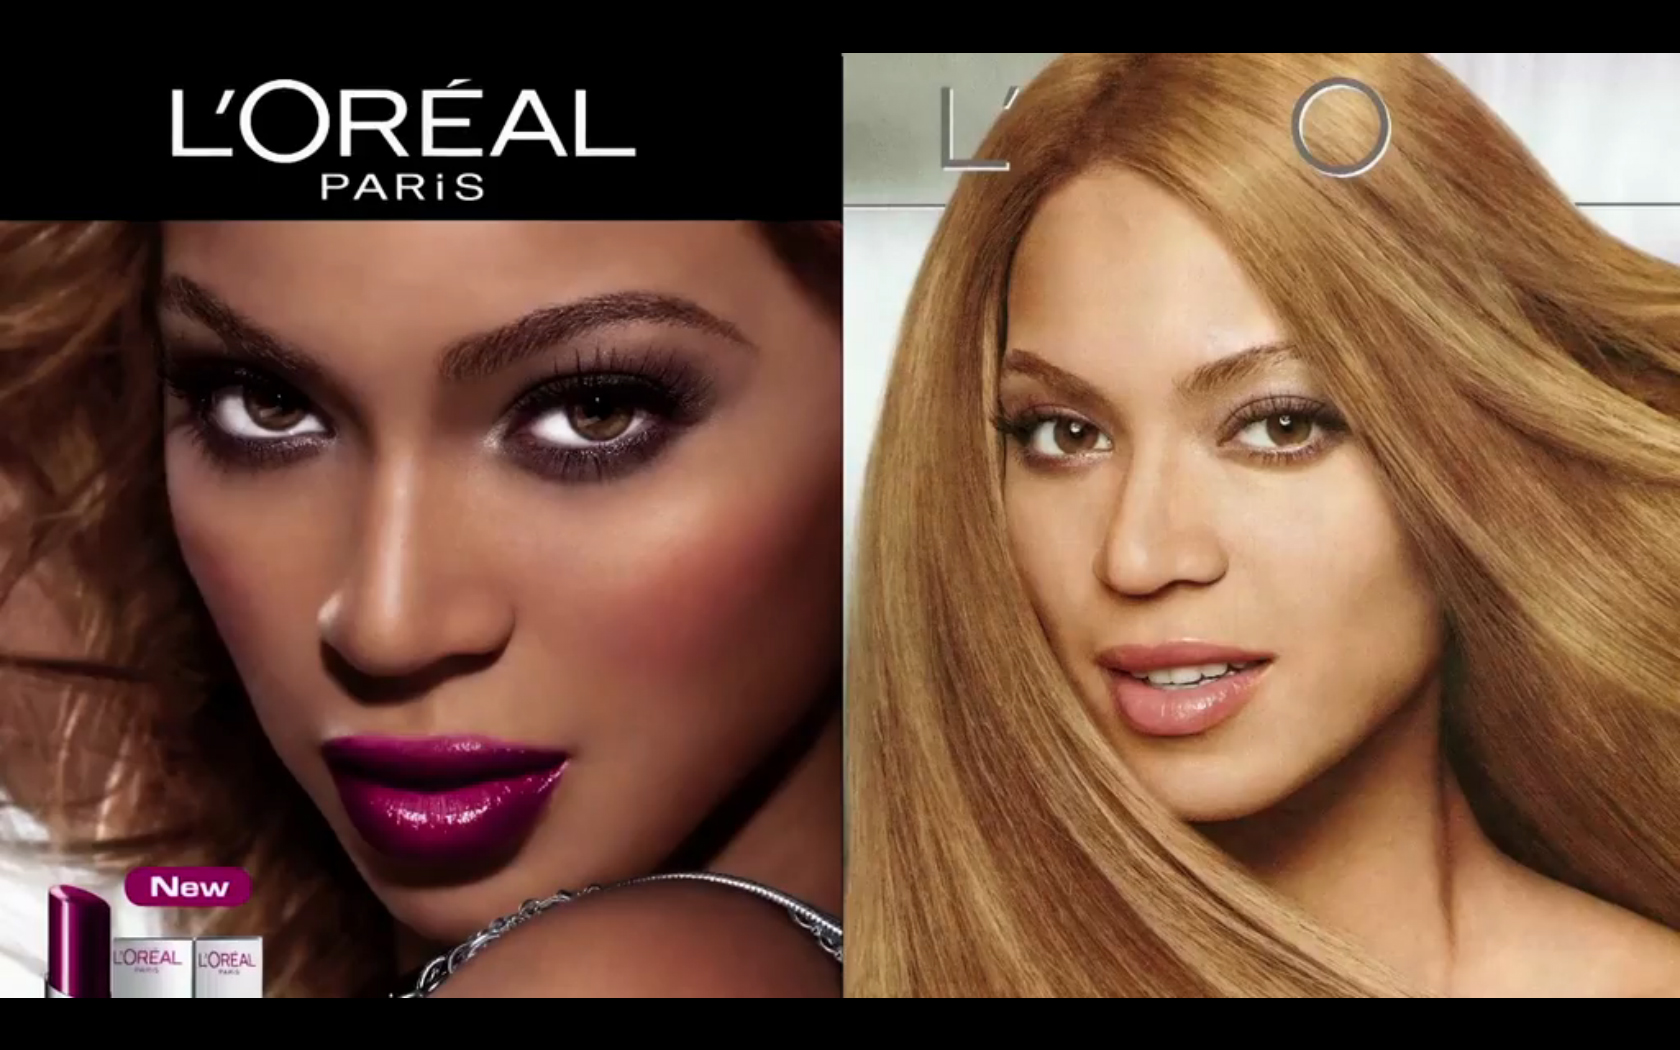 Two ads featuring Beyoncé, her skin is lighter in one ad than in the other.